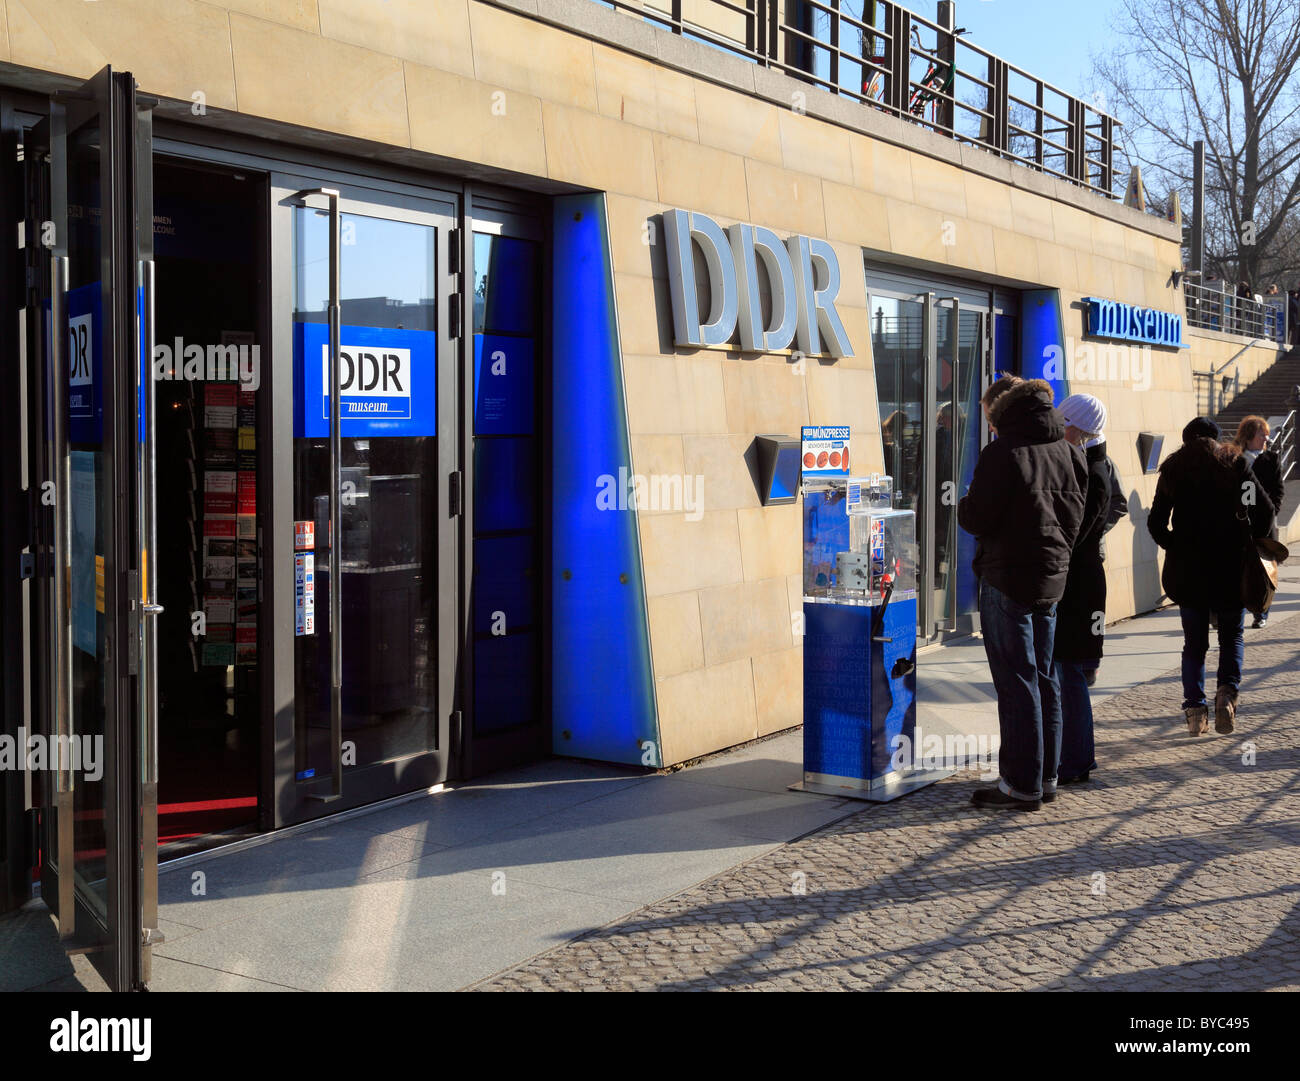 DDR Museum, Berlin, Germany - Stock Image